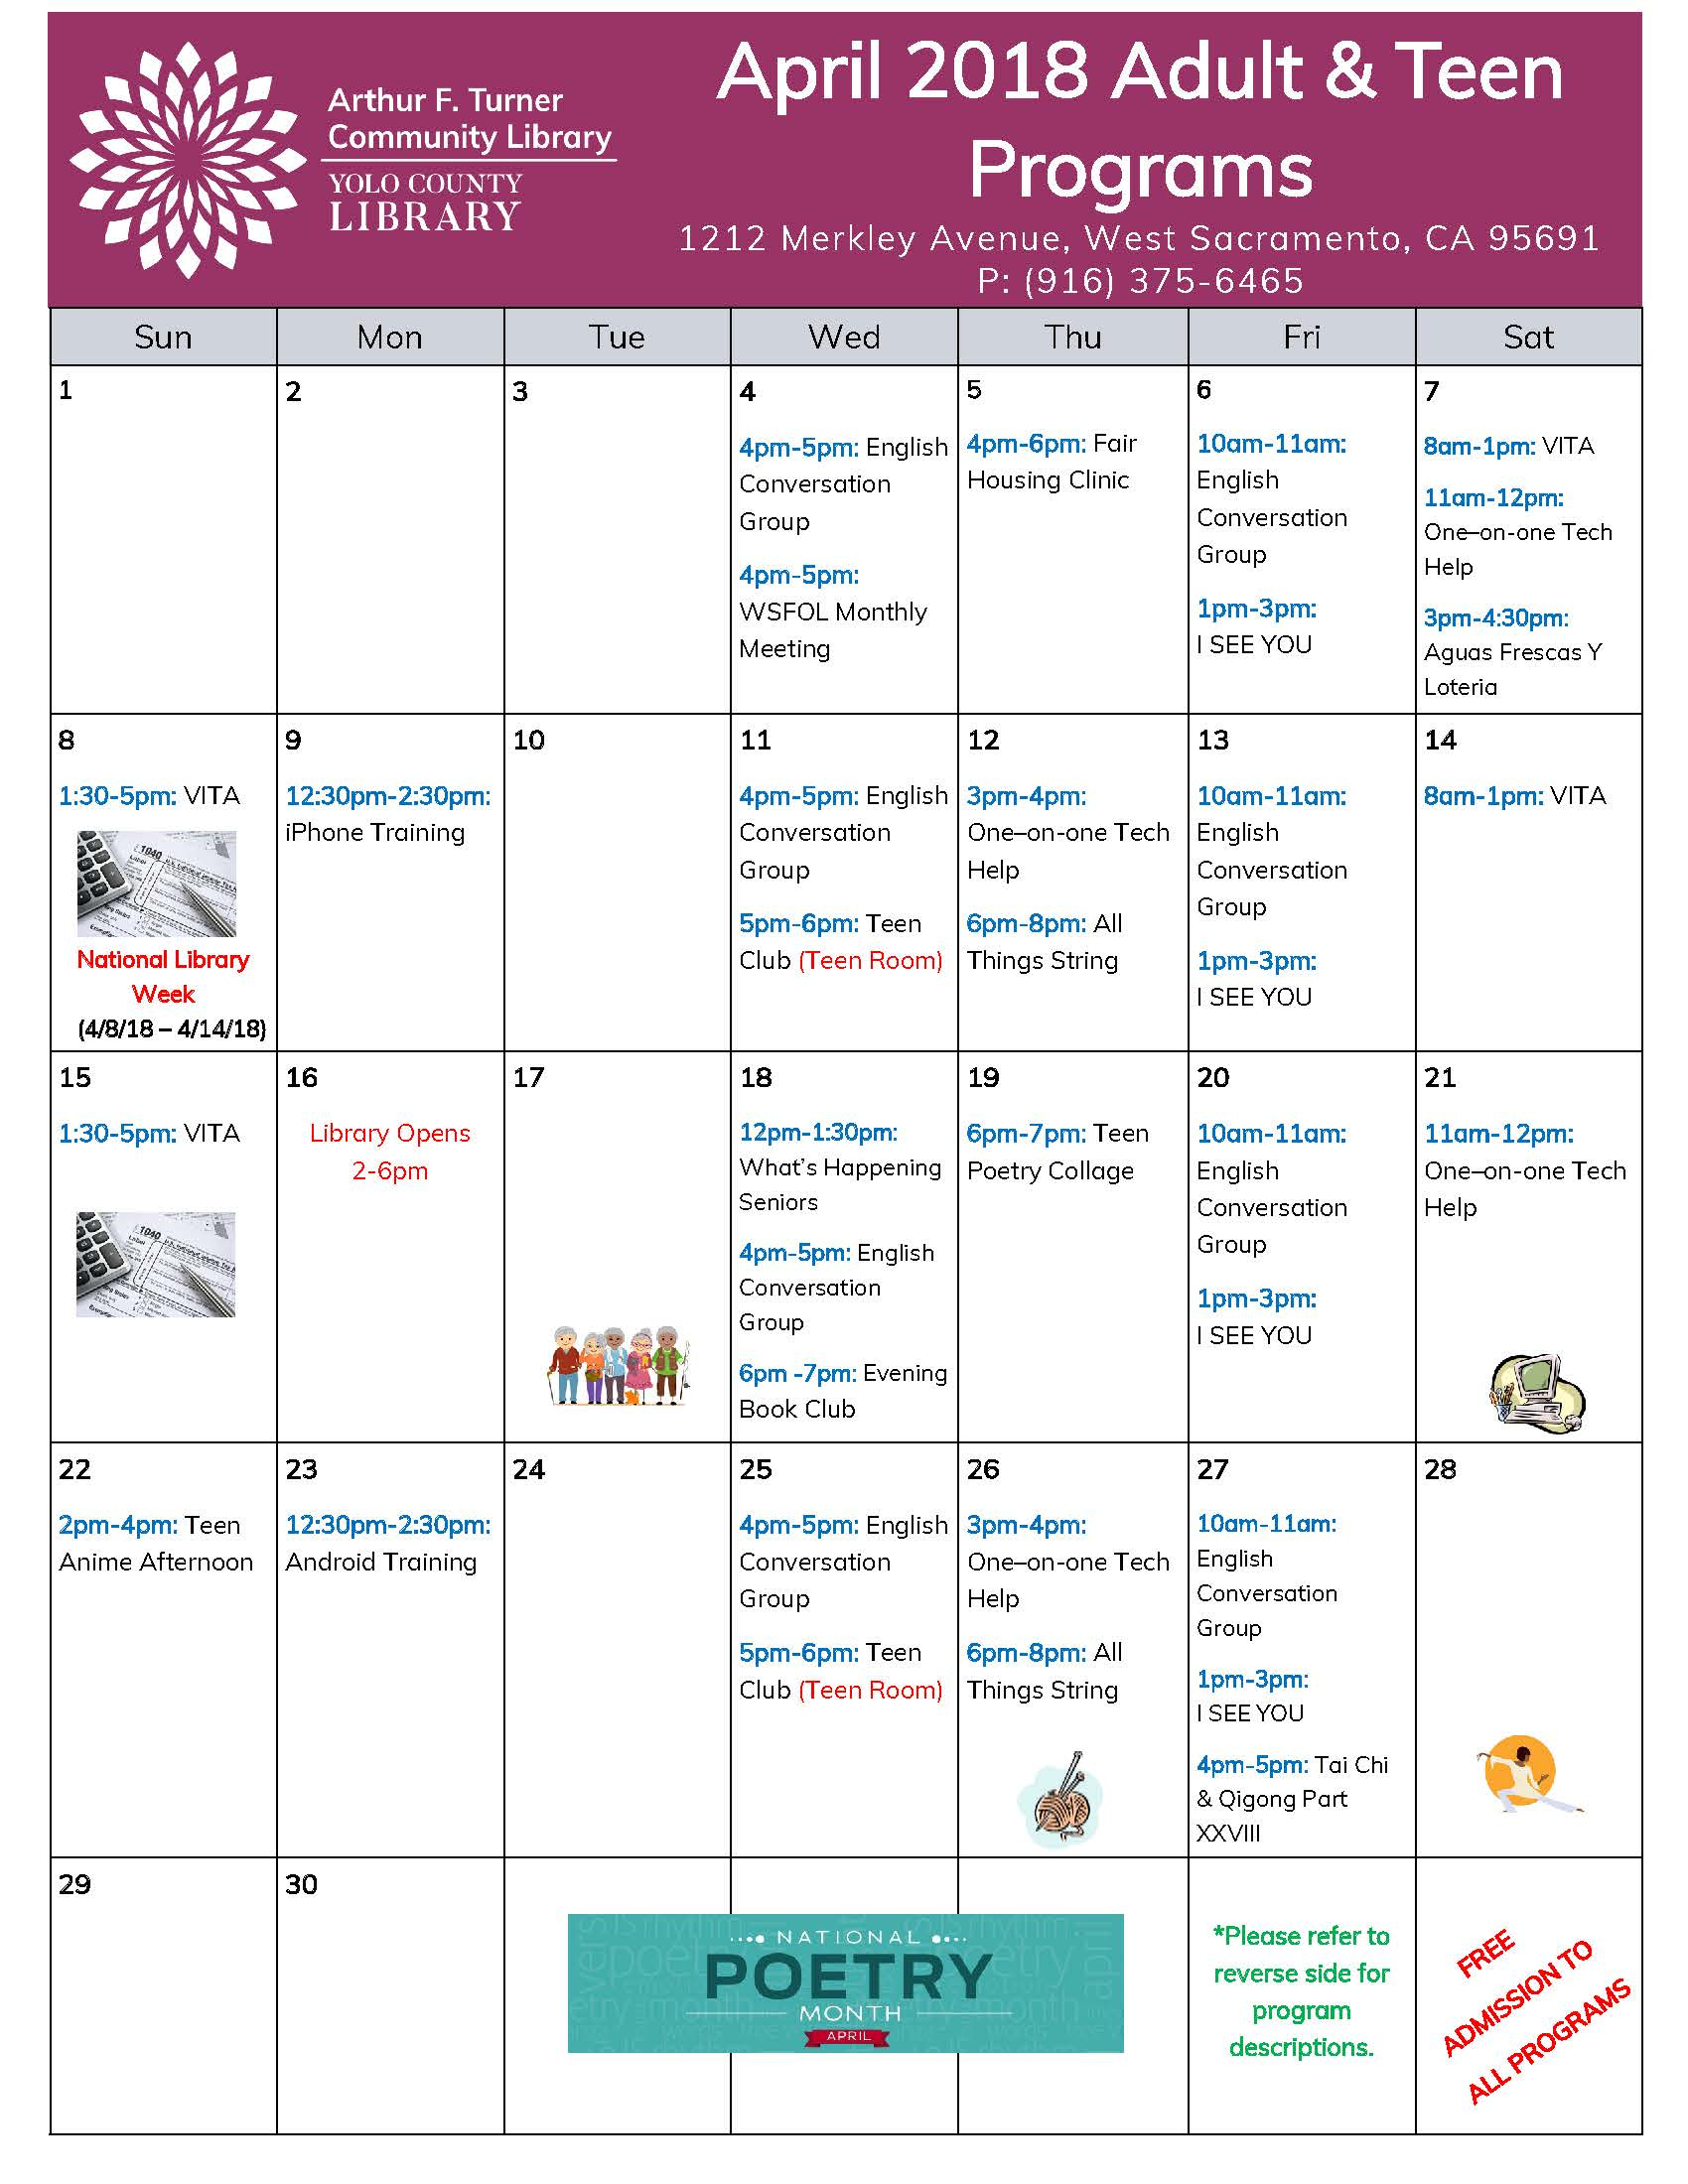 Events for Adults at West Sac Library for Month of April